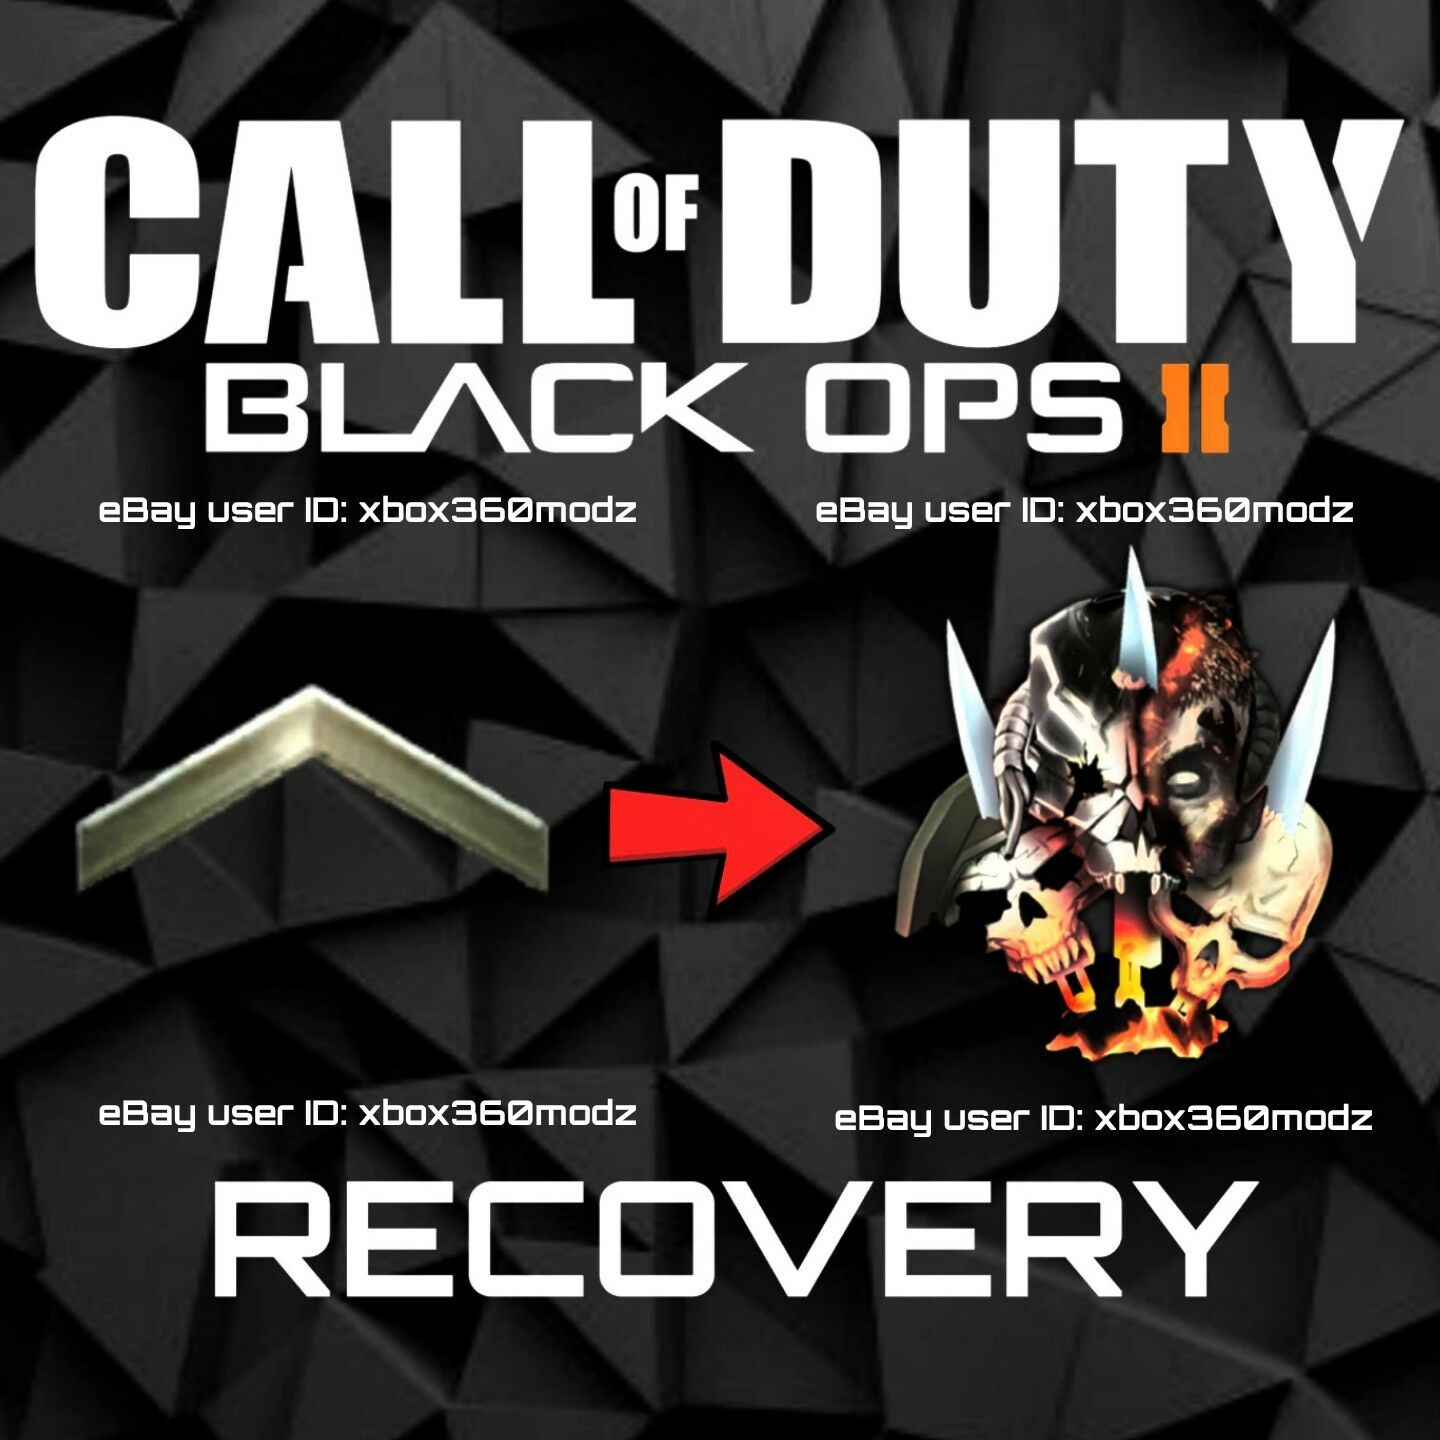 CALL OF DUTY Black Ops 2 Recovery Mod Prestige Master